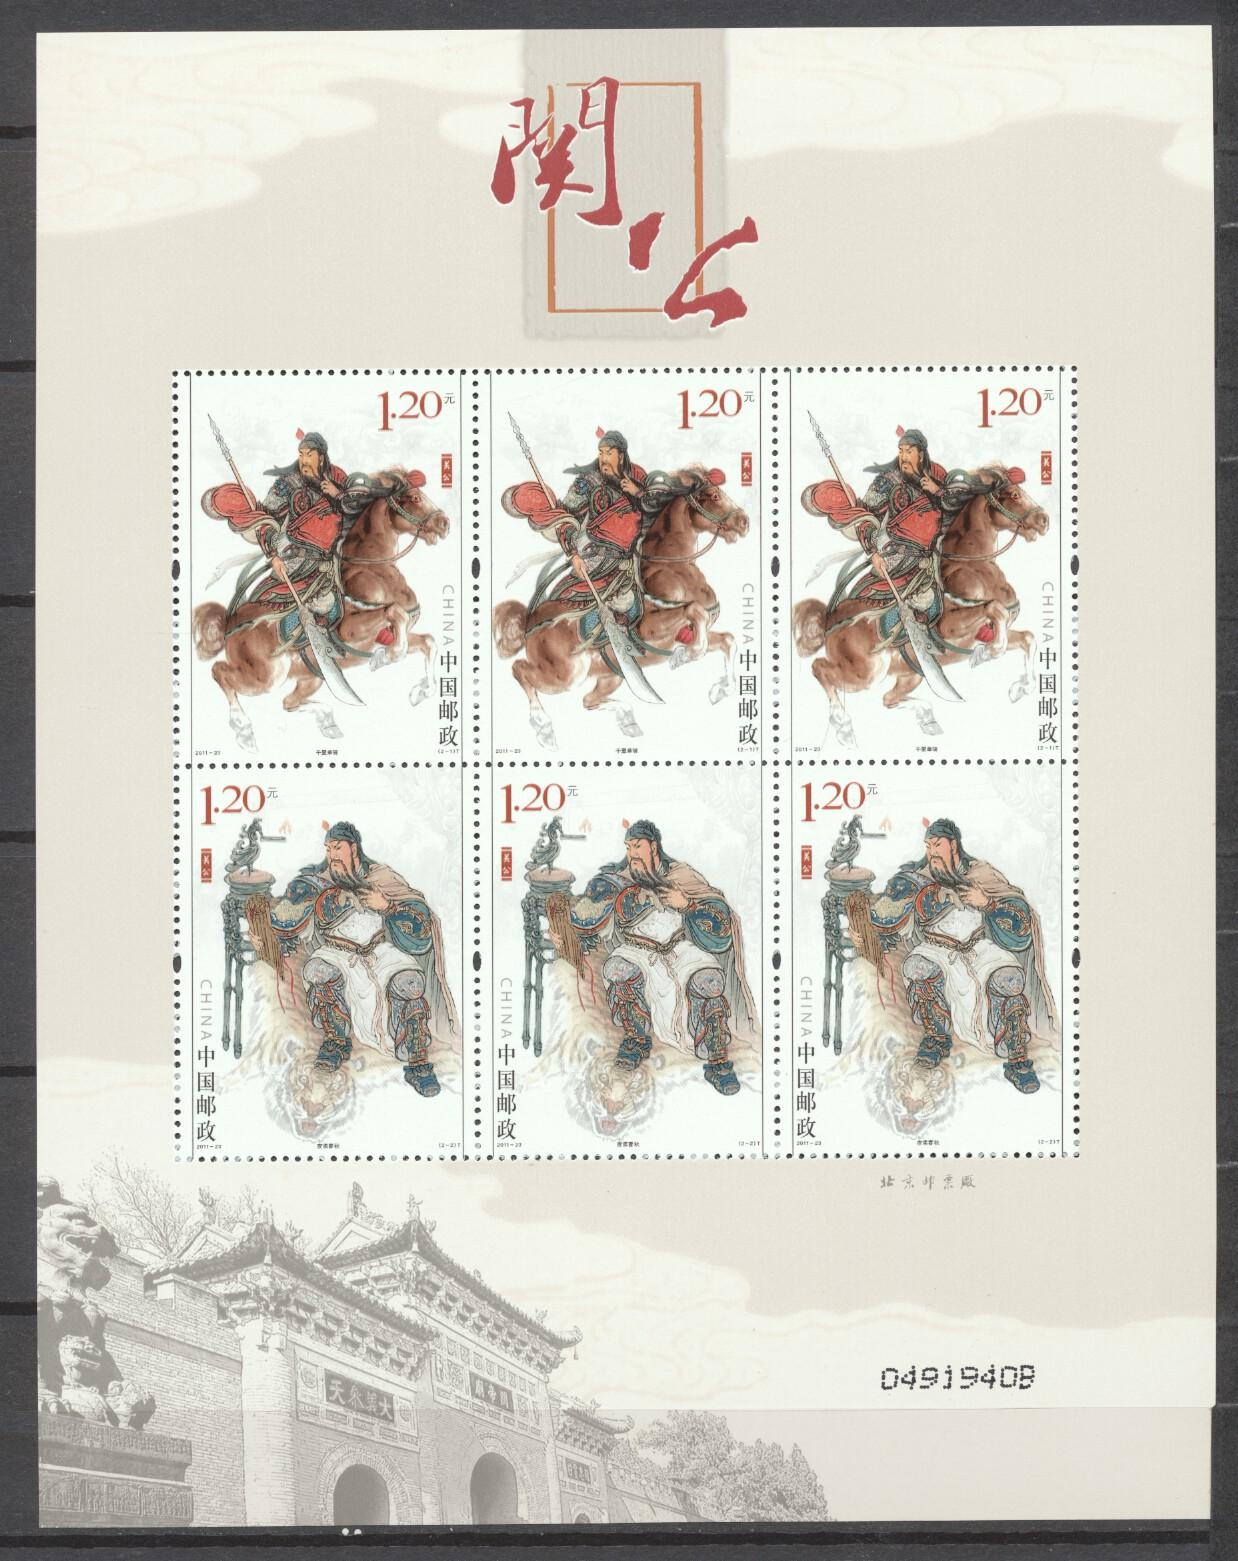 Stamps with Horse, Art (Asia) from China P.R. (image for product #263257)